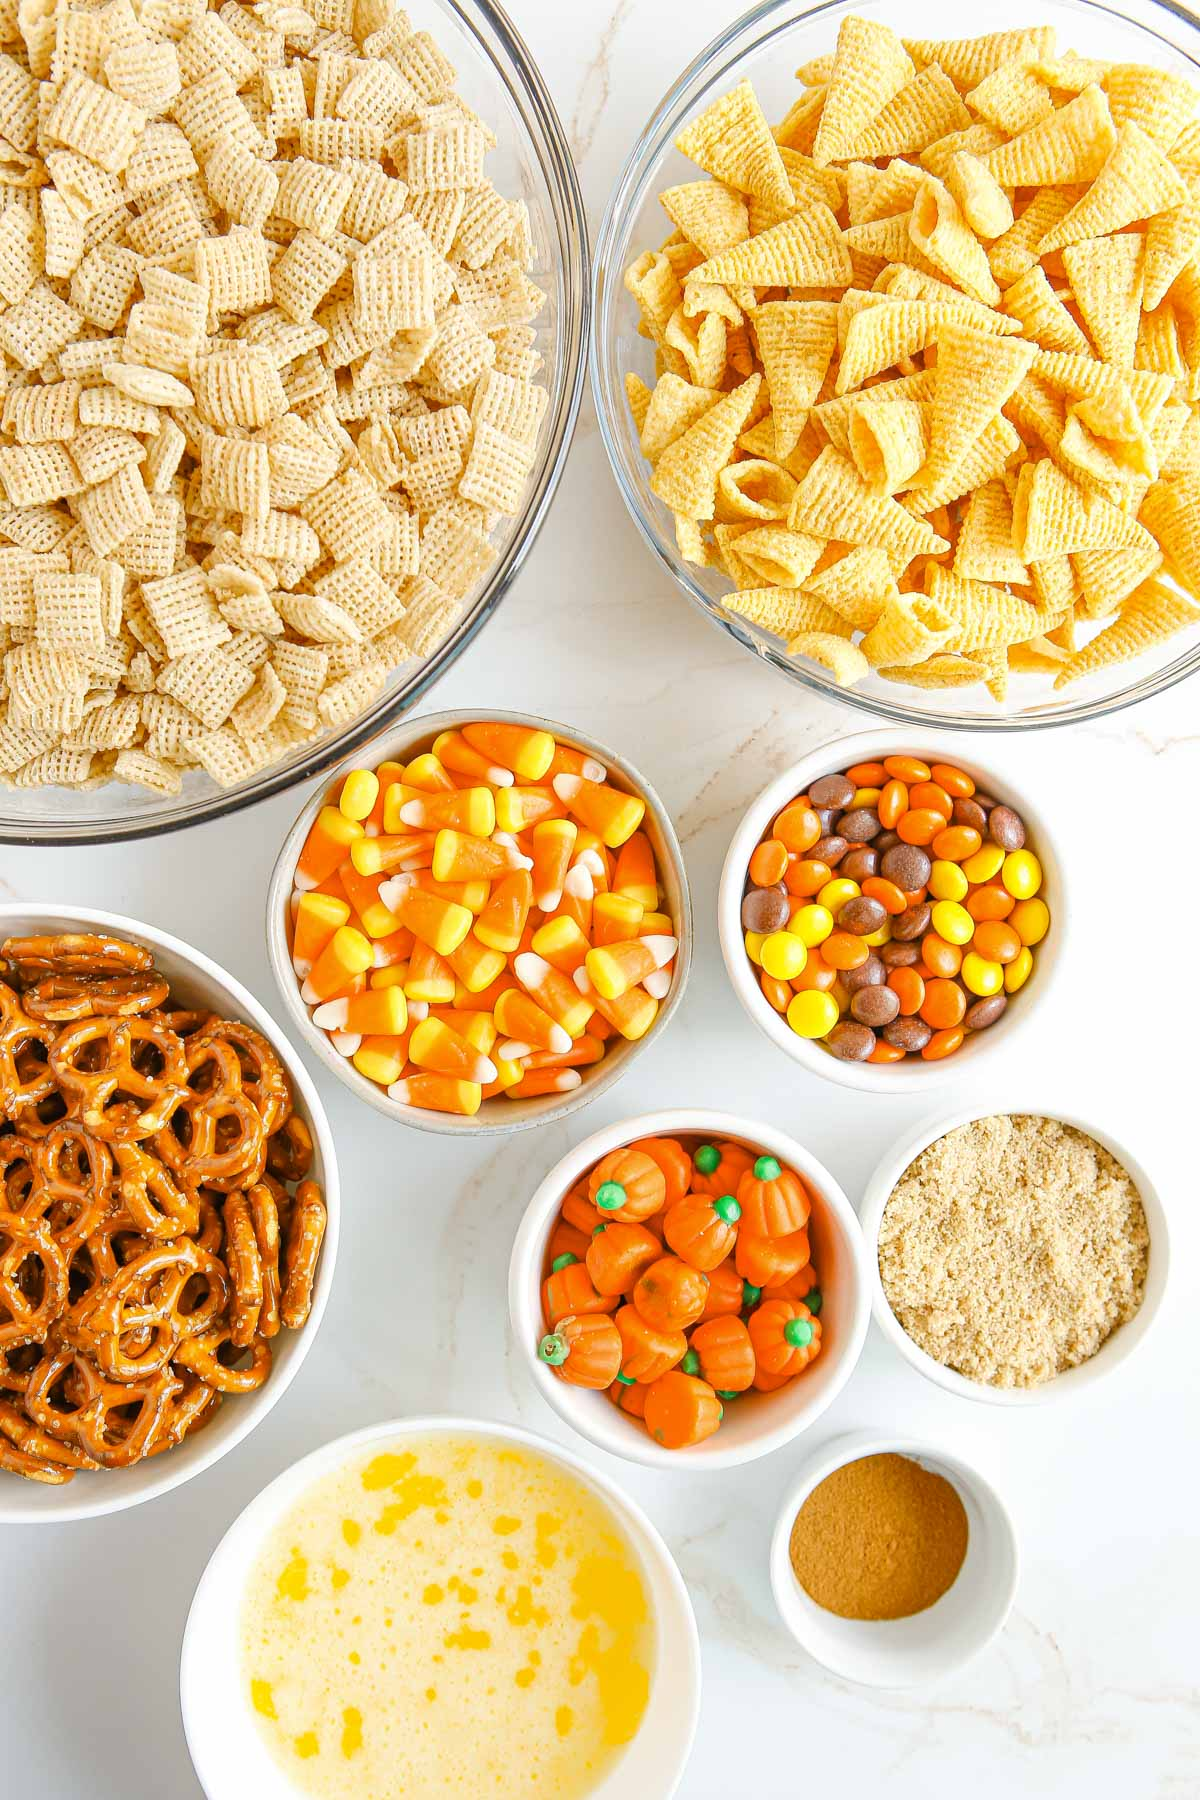 ingredients needed to make harvest chex mix